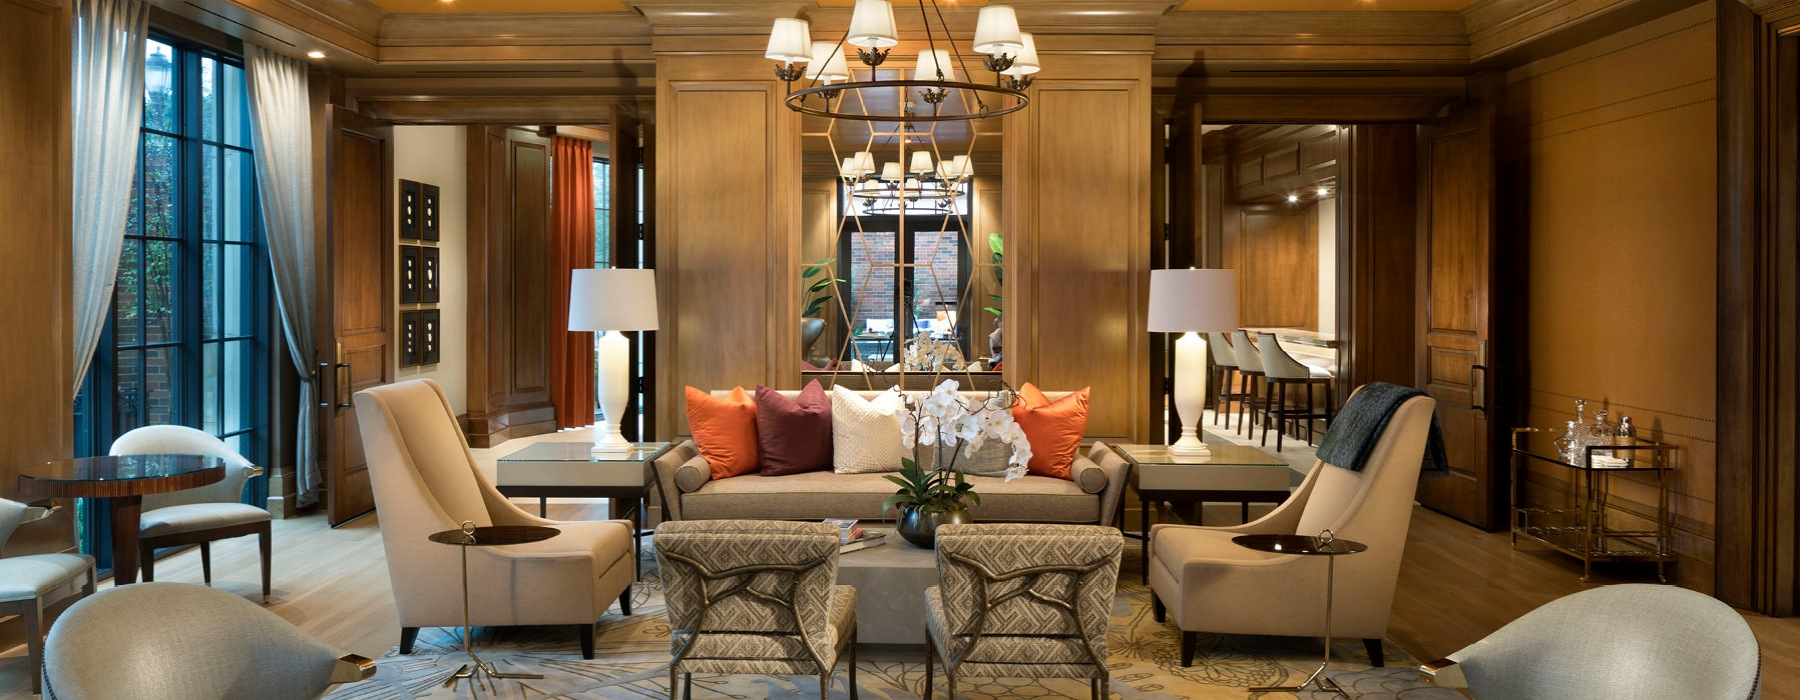 Clubhouse features plush seating and exquisite details